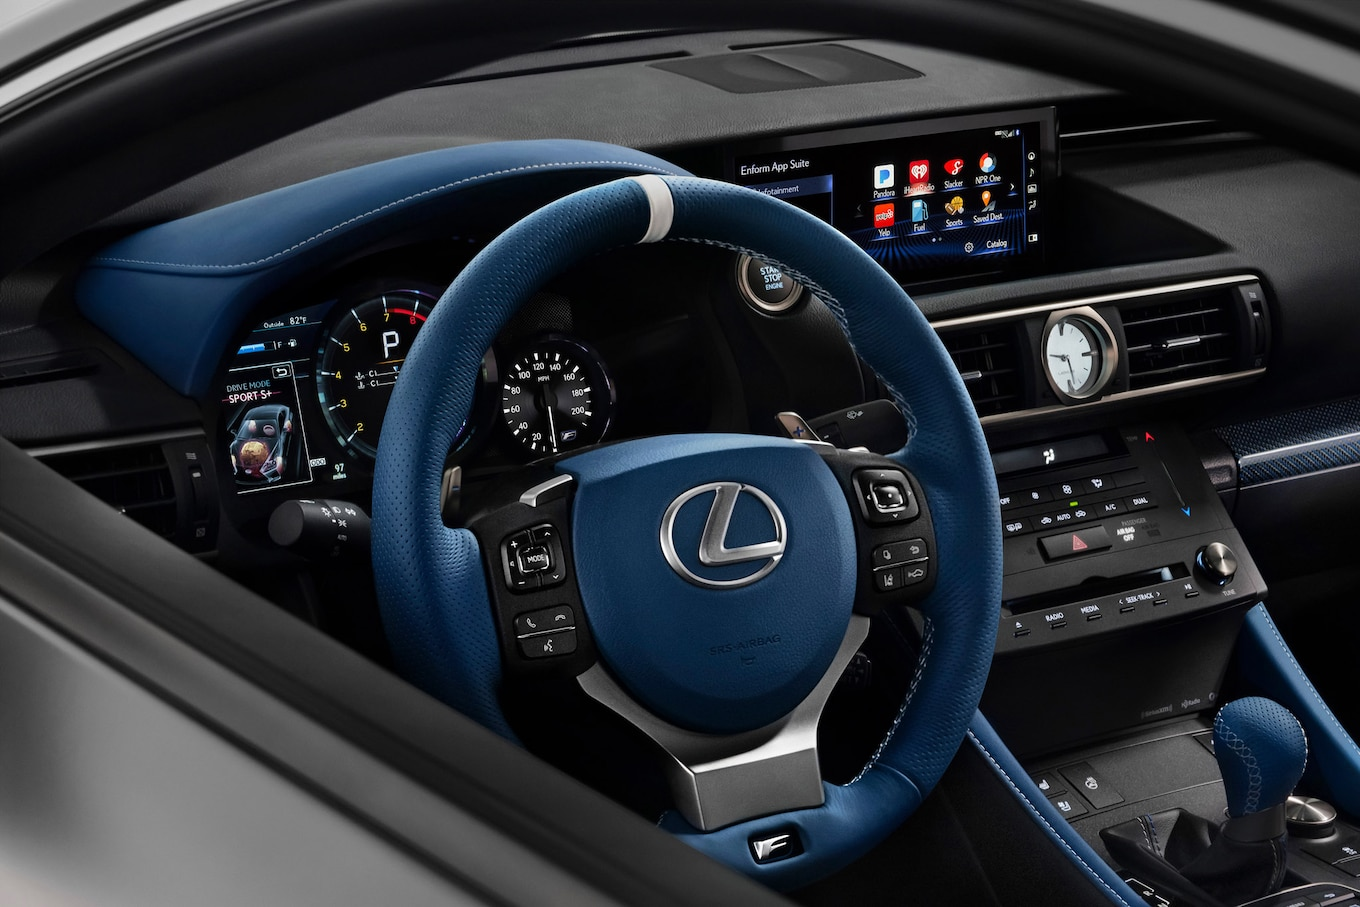 Lexus Says The RC F Coupe Features Blue Leather Front Sport Seats With  White Accents, A Blue Shift Knob, Steering Wheel, Instrument Panel Hood, ...